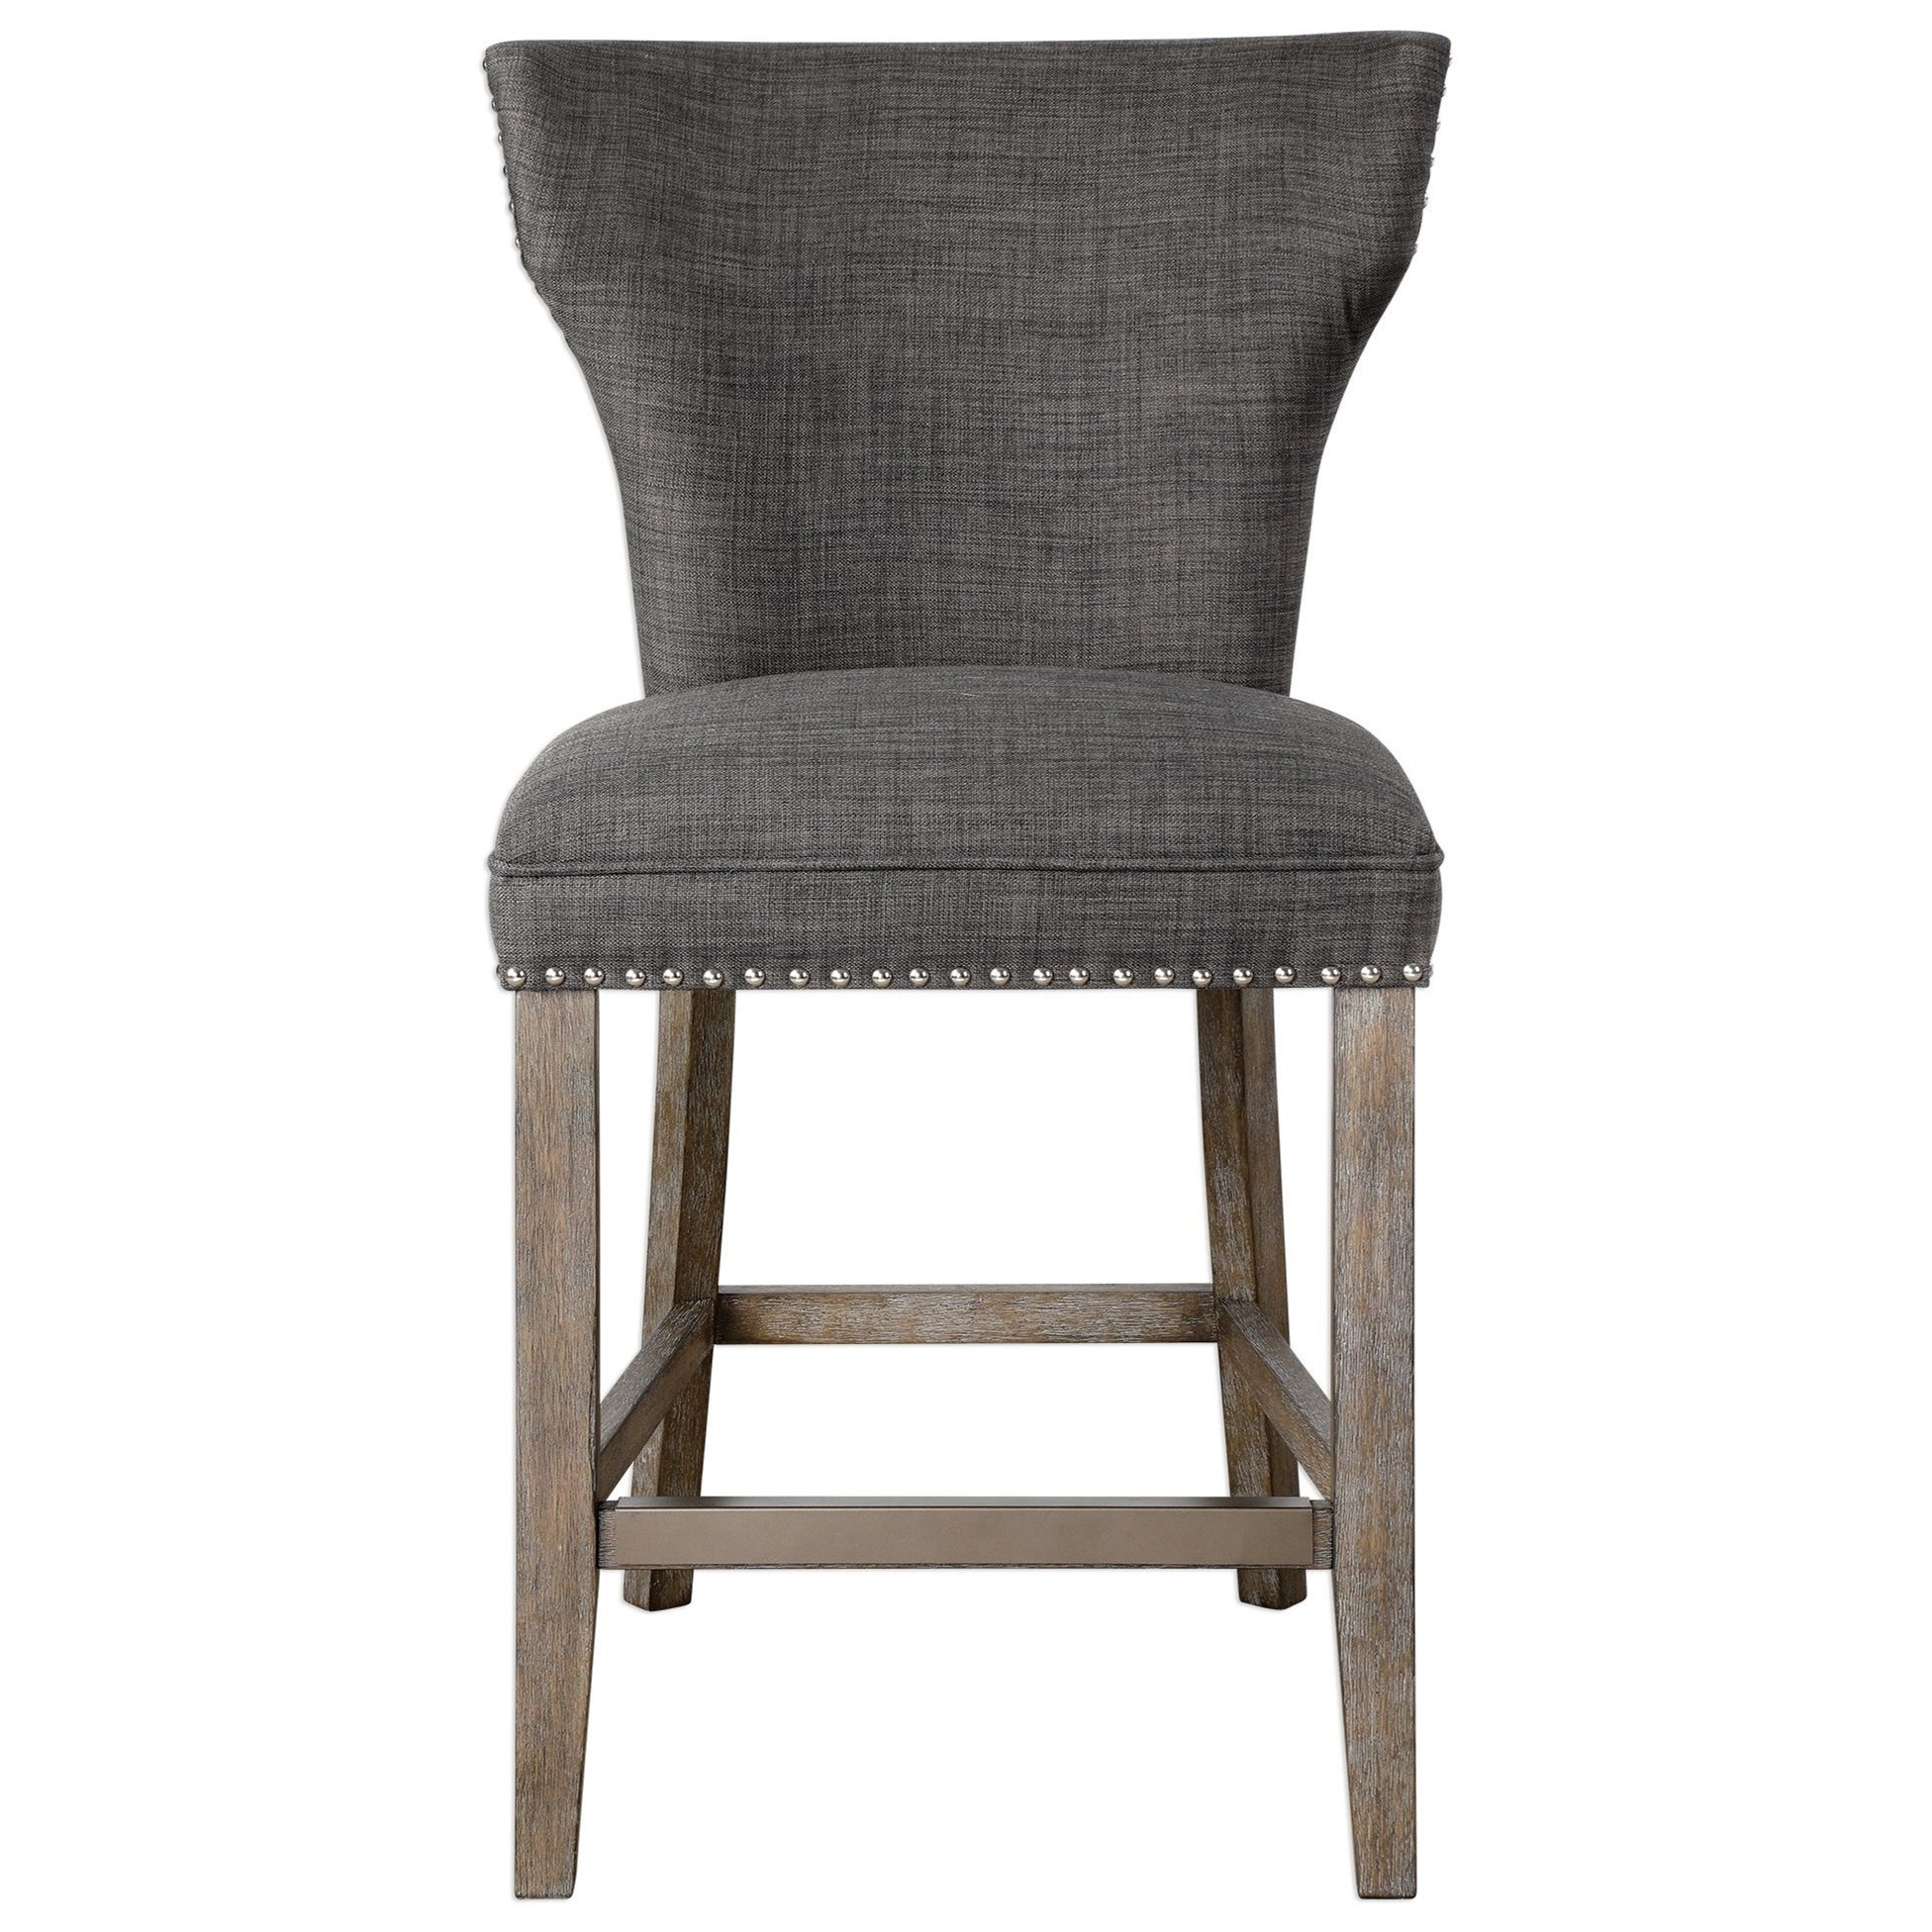 Accent Furniture - Stools Arnaud Charcoal Counter Stool by Uttermost at Furniture Superstore - Rochester, MN